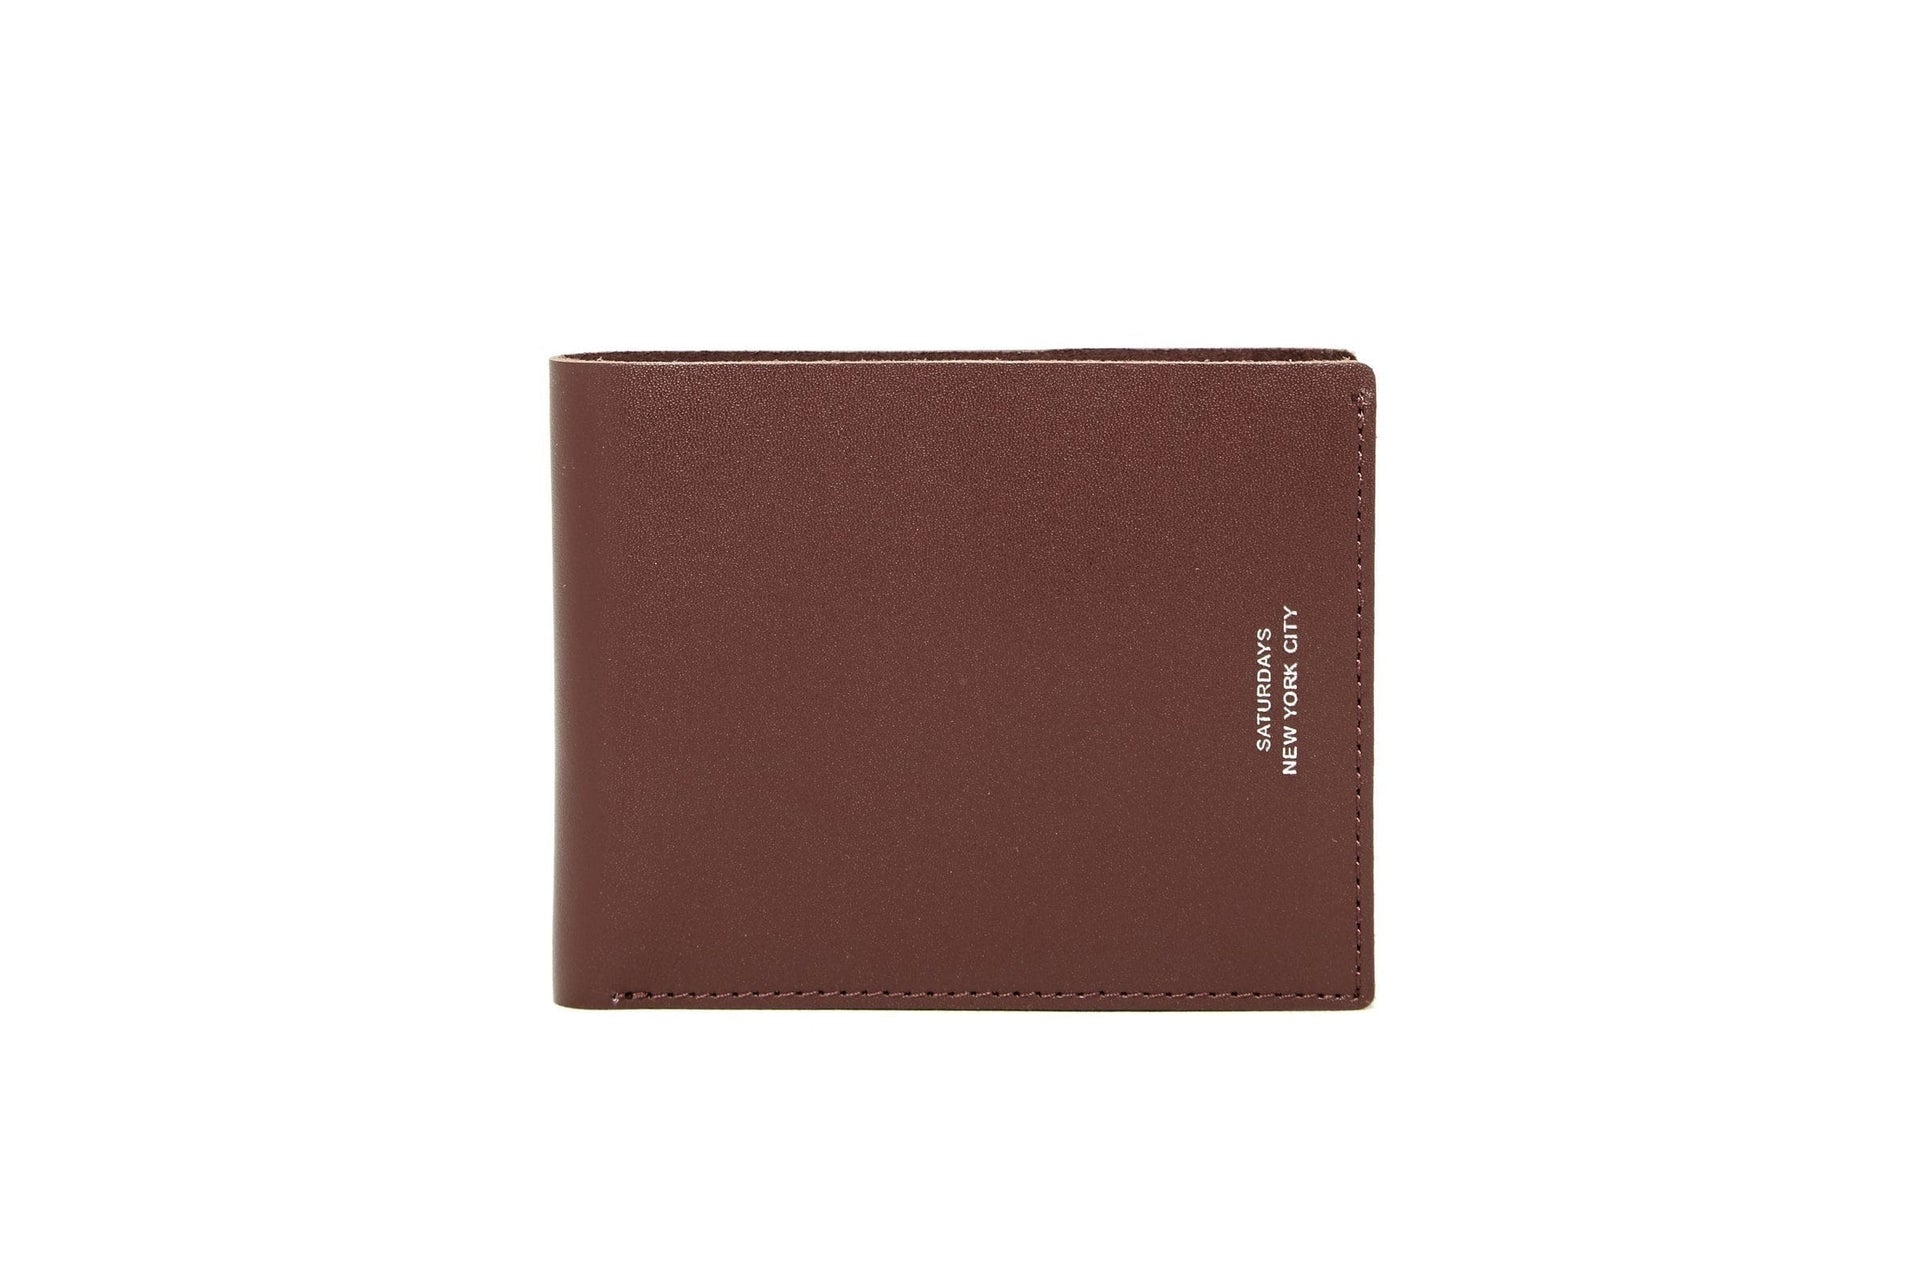 BI FOLD WALLET ACCESSORIES SATURDAYS NYC BROWN ONE SIZE